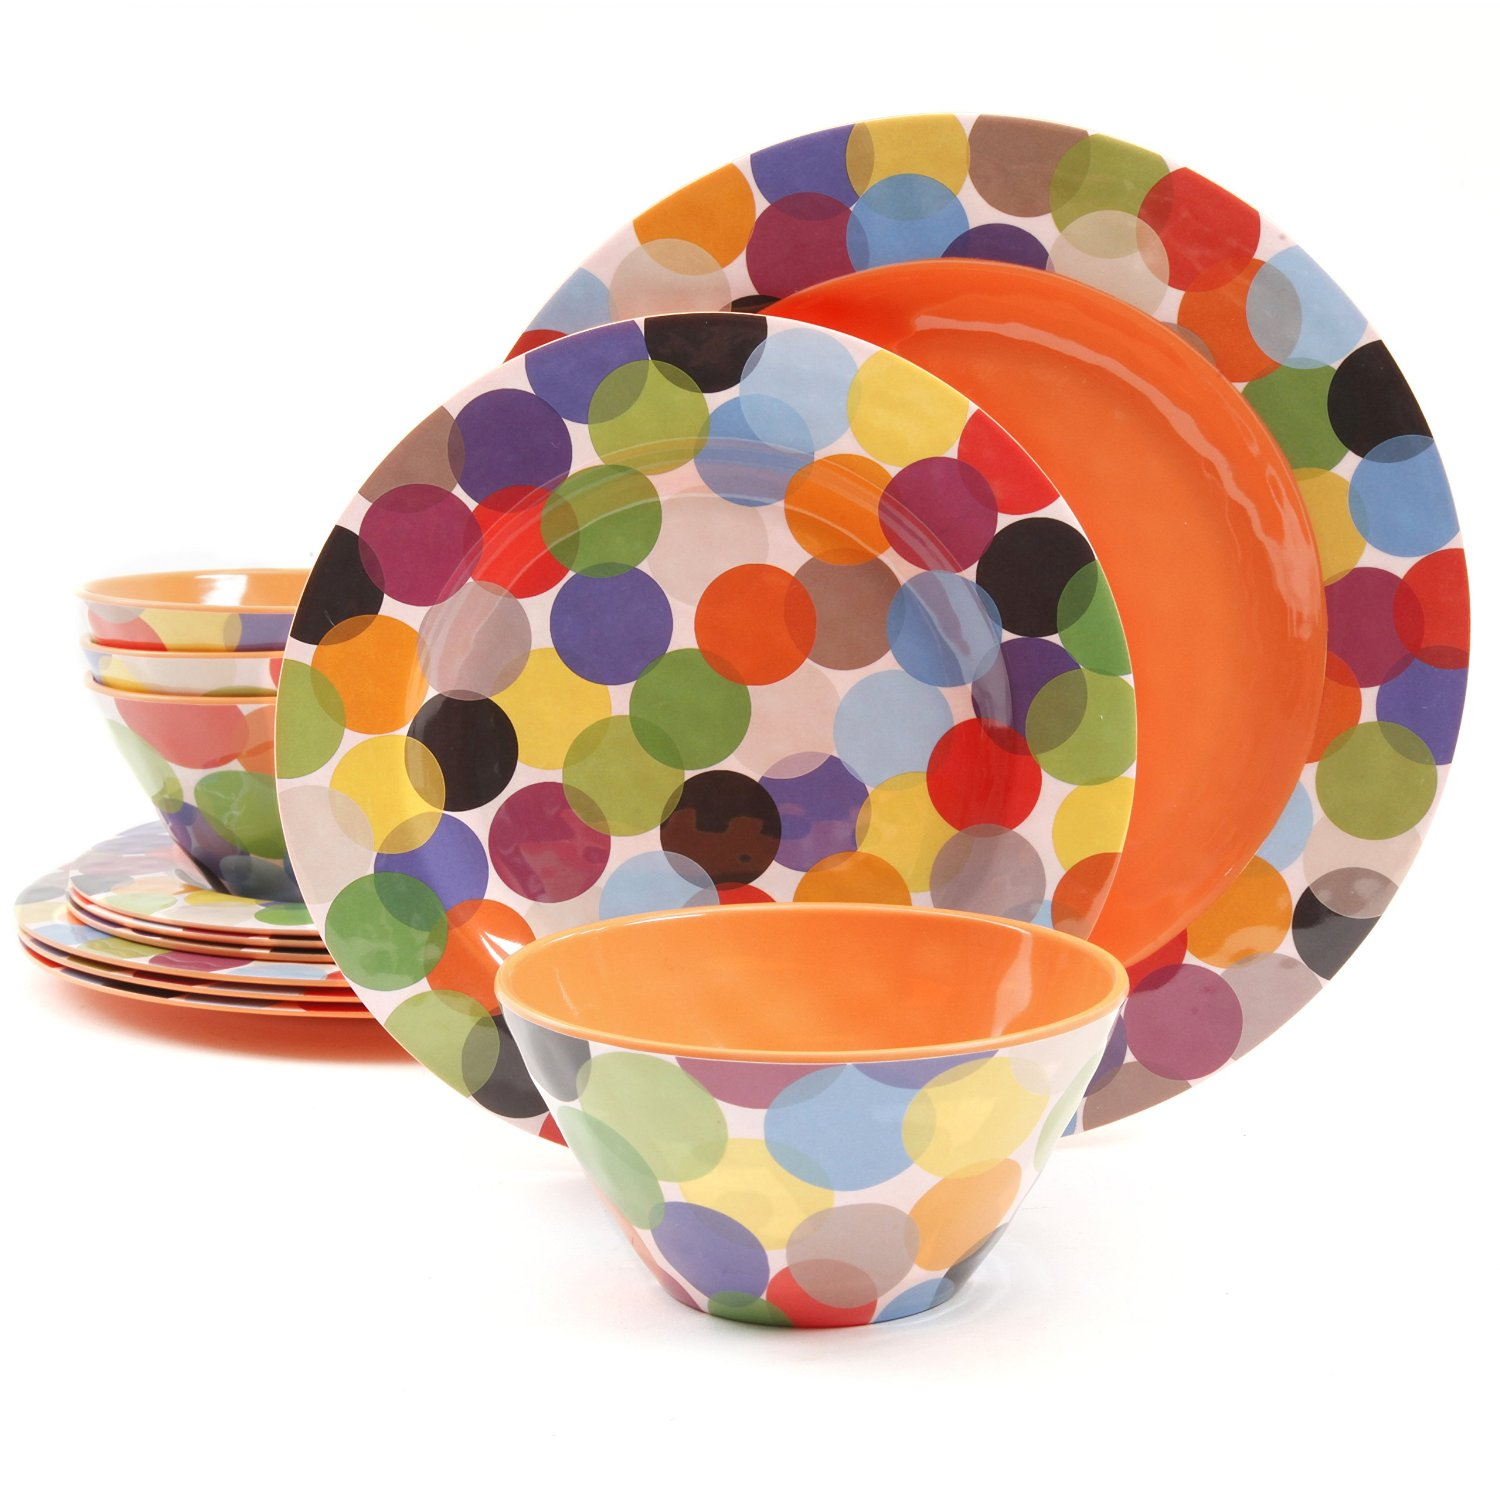 Melamine Dinnerware Sets